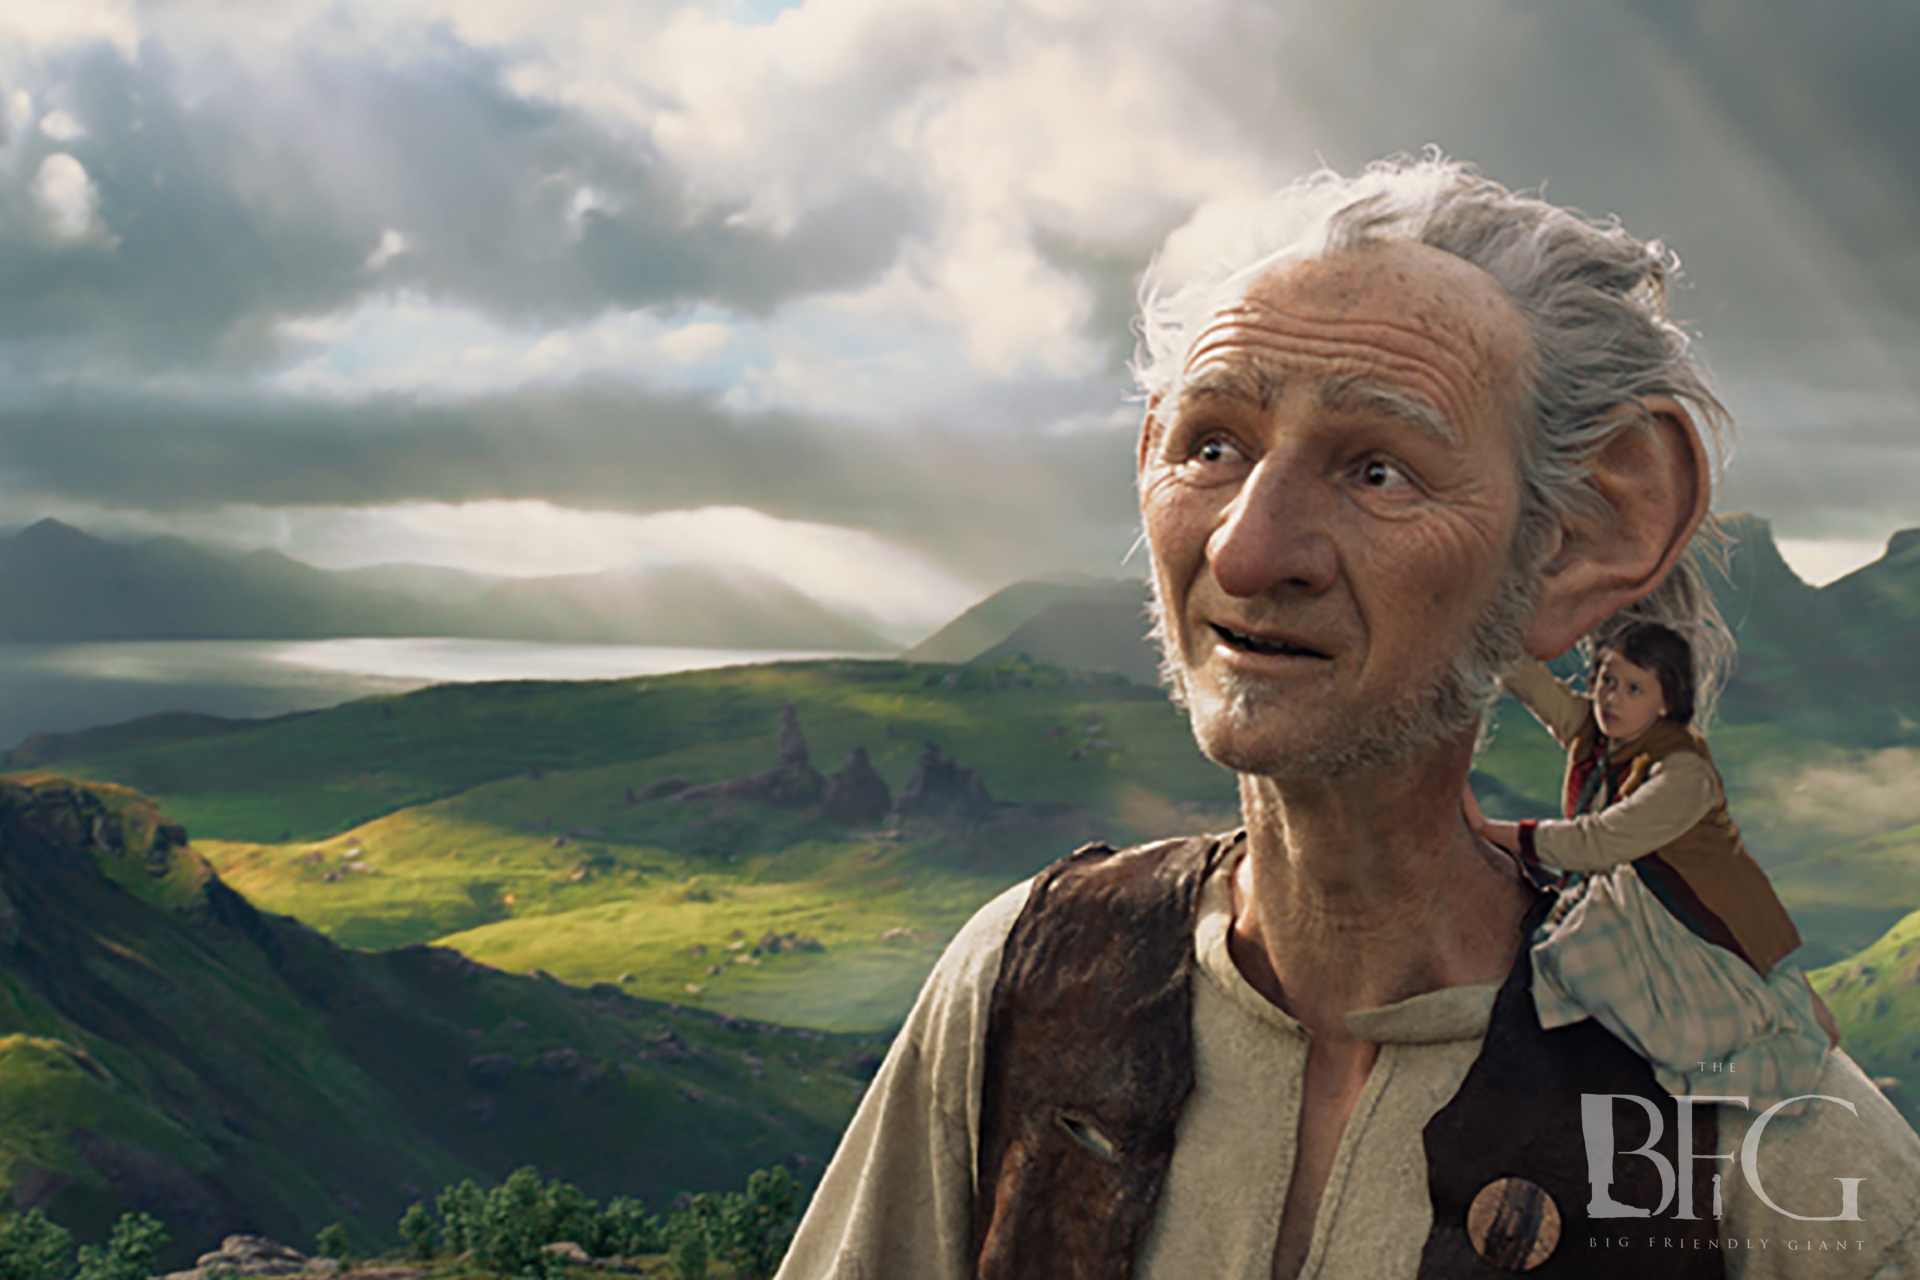 Quotes From The Bfg: The BFG (Big Friendly Giant) 2016: HD Wallpapers